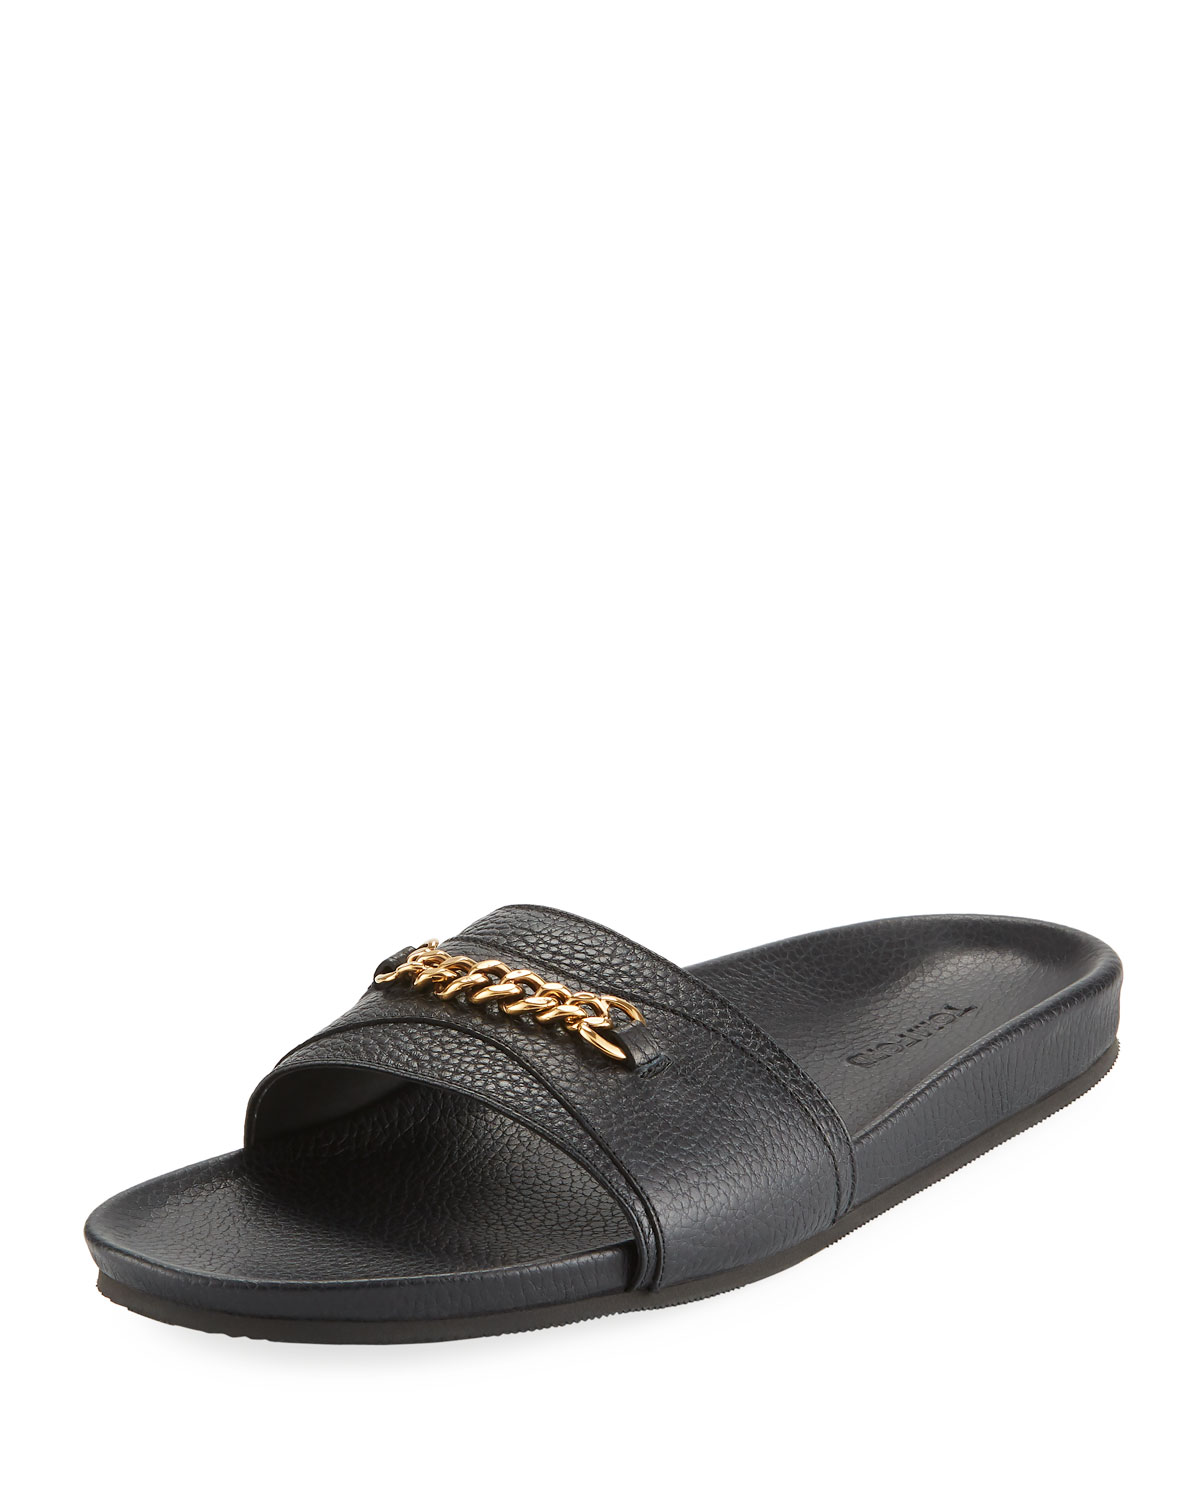 Tom Ford Slippers Leather Slide Sandal with Curb-Link Chain